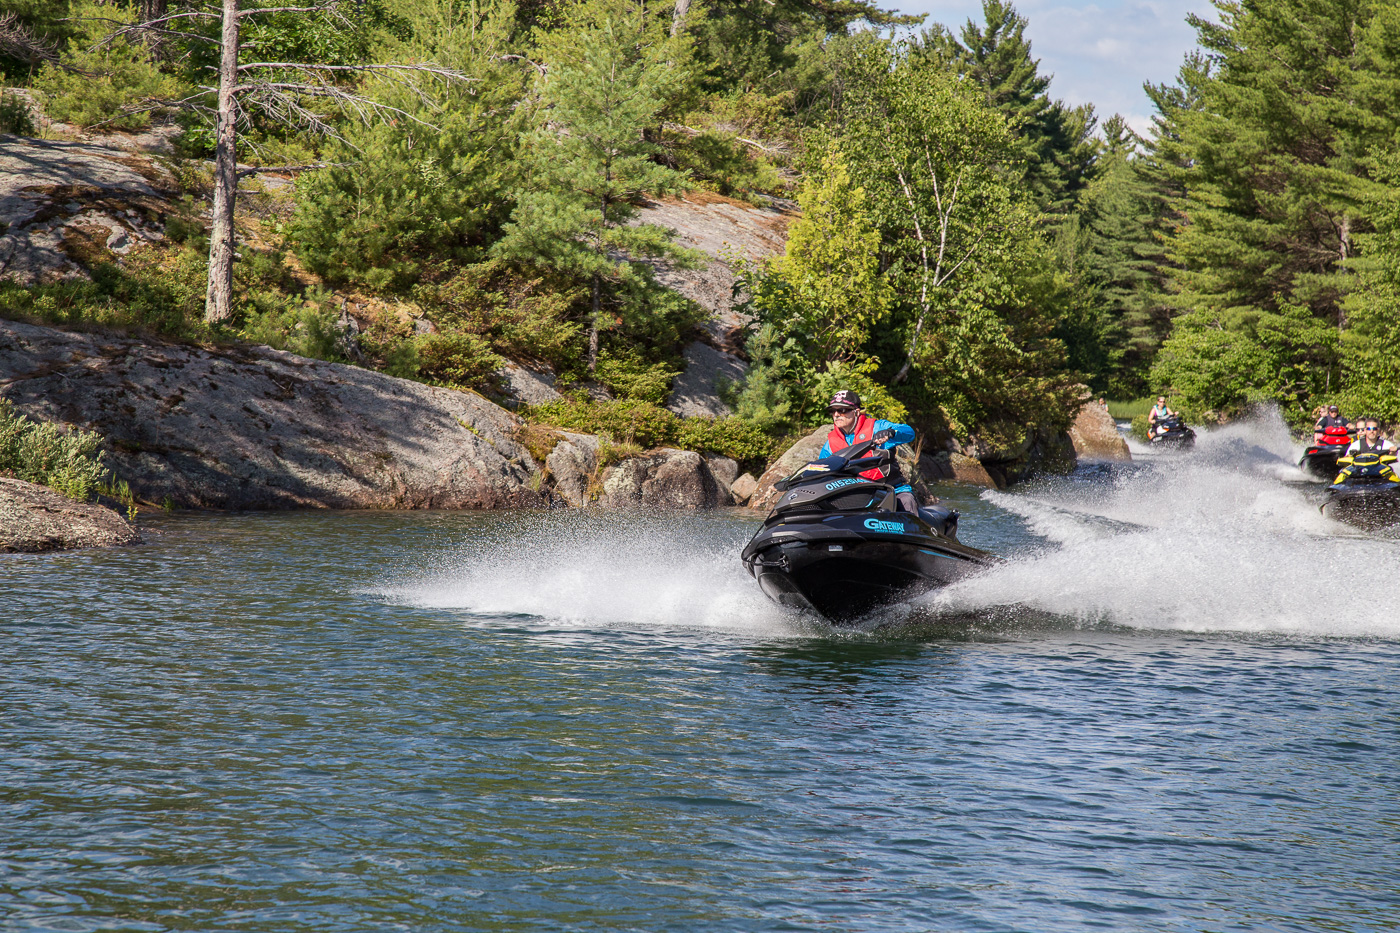 sea doo suspension